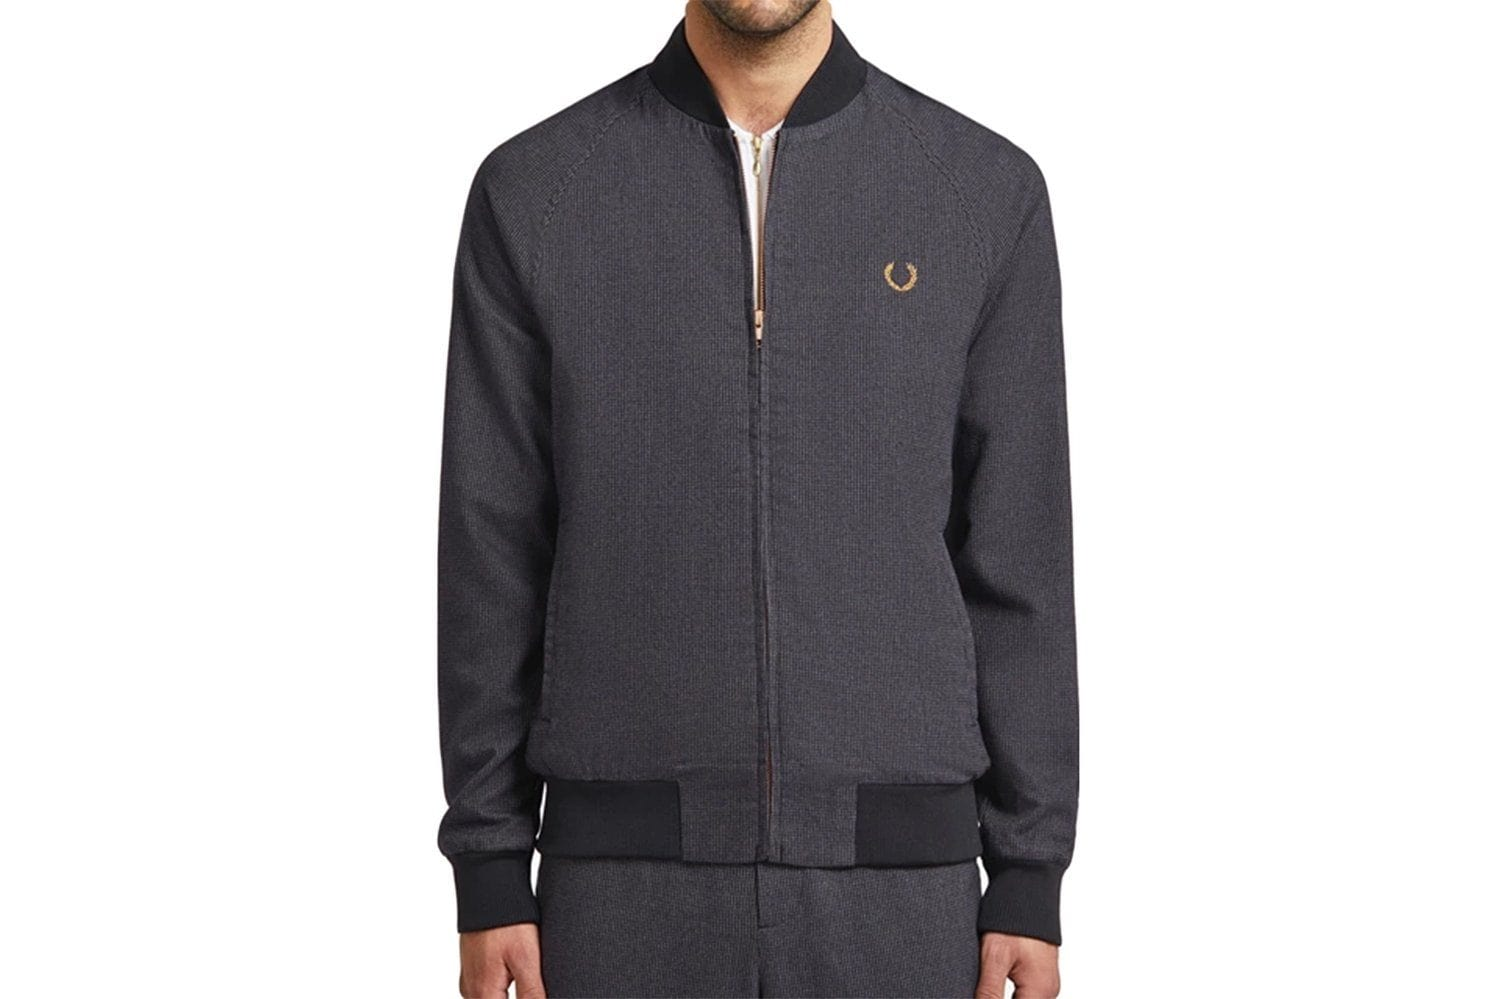 BOMBER JACKET MILES KANE-SJ7006 MENS SOFTGOODS FRED PERRY